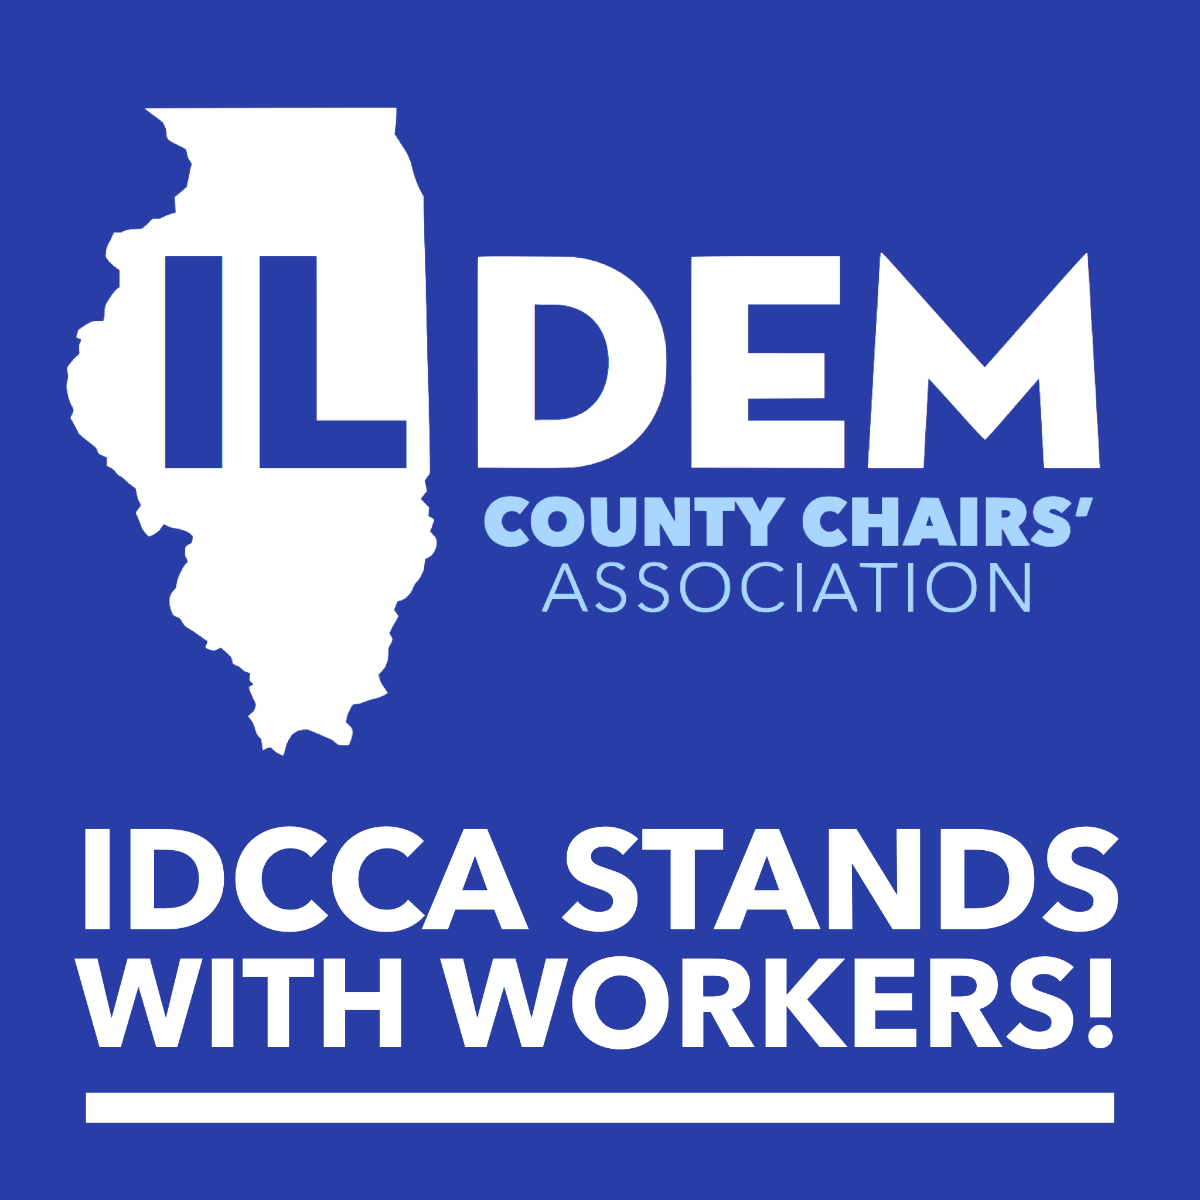 IDCCA RESOLUTION PUTS PRIORITY ON UNION LABOR